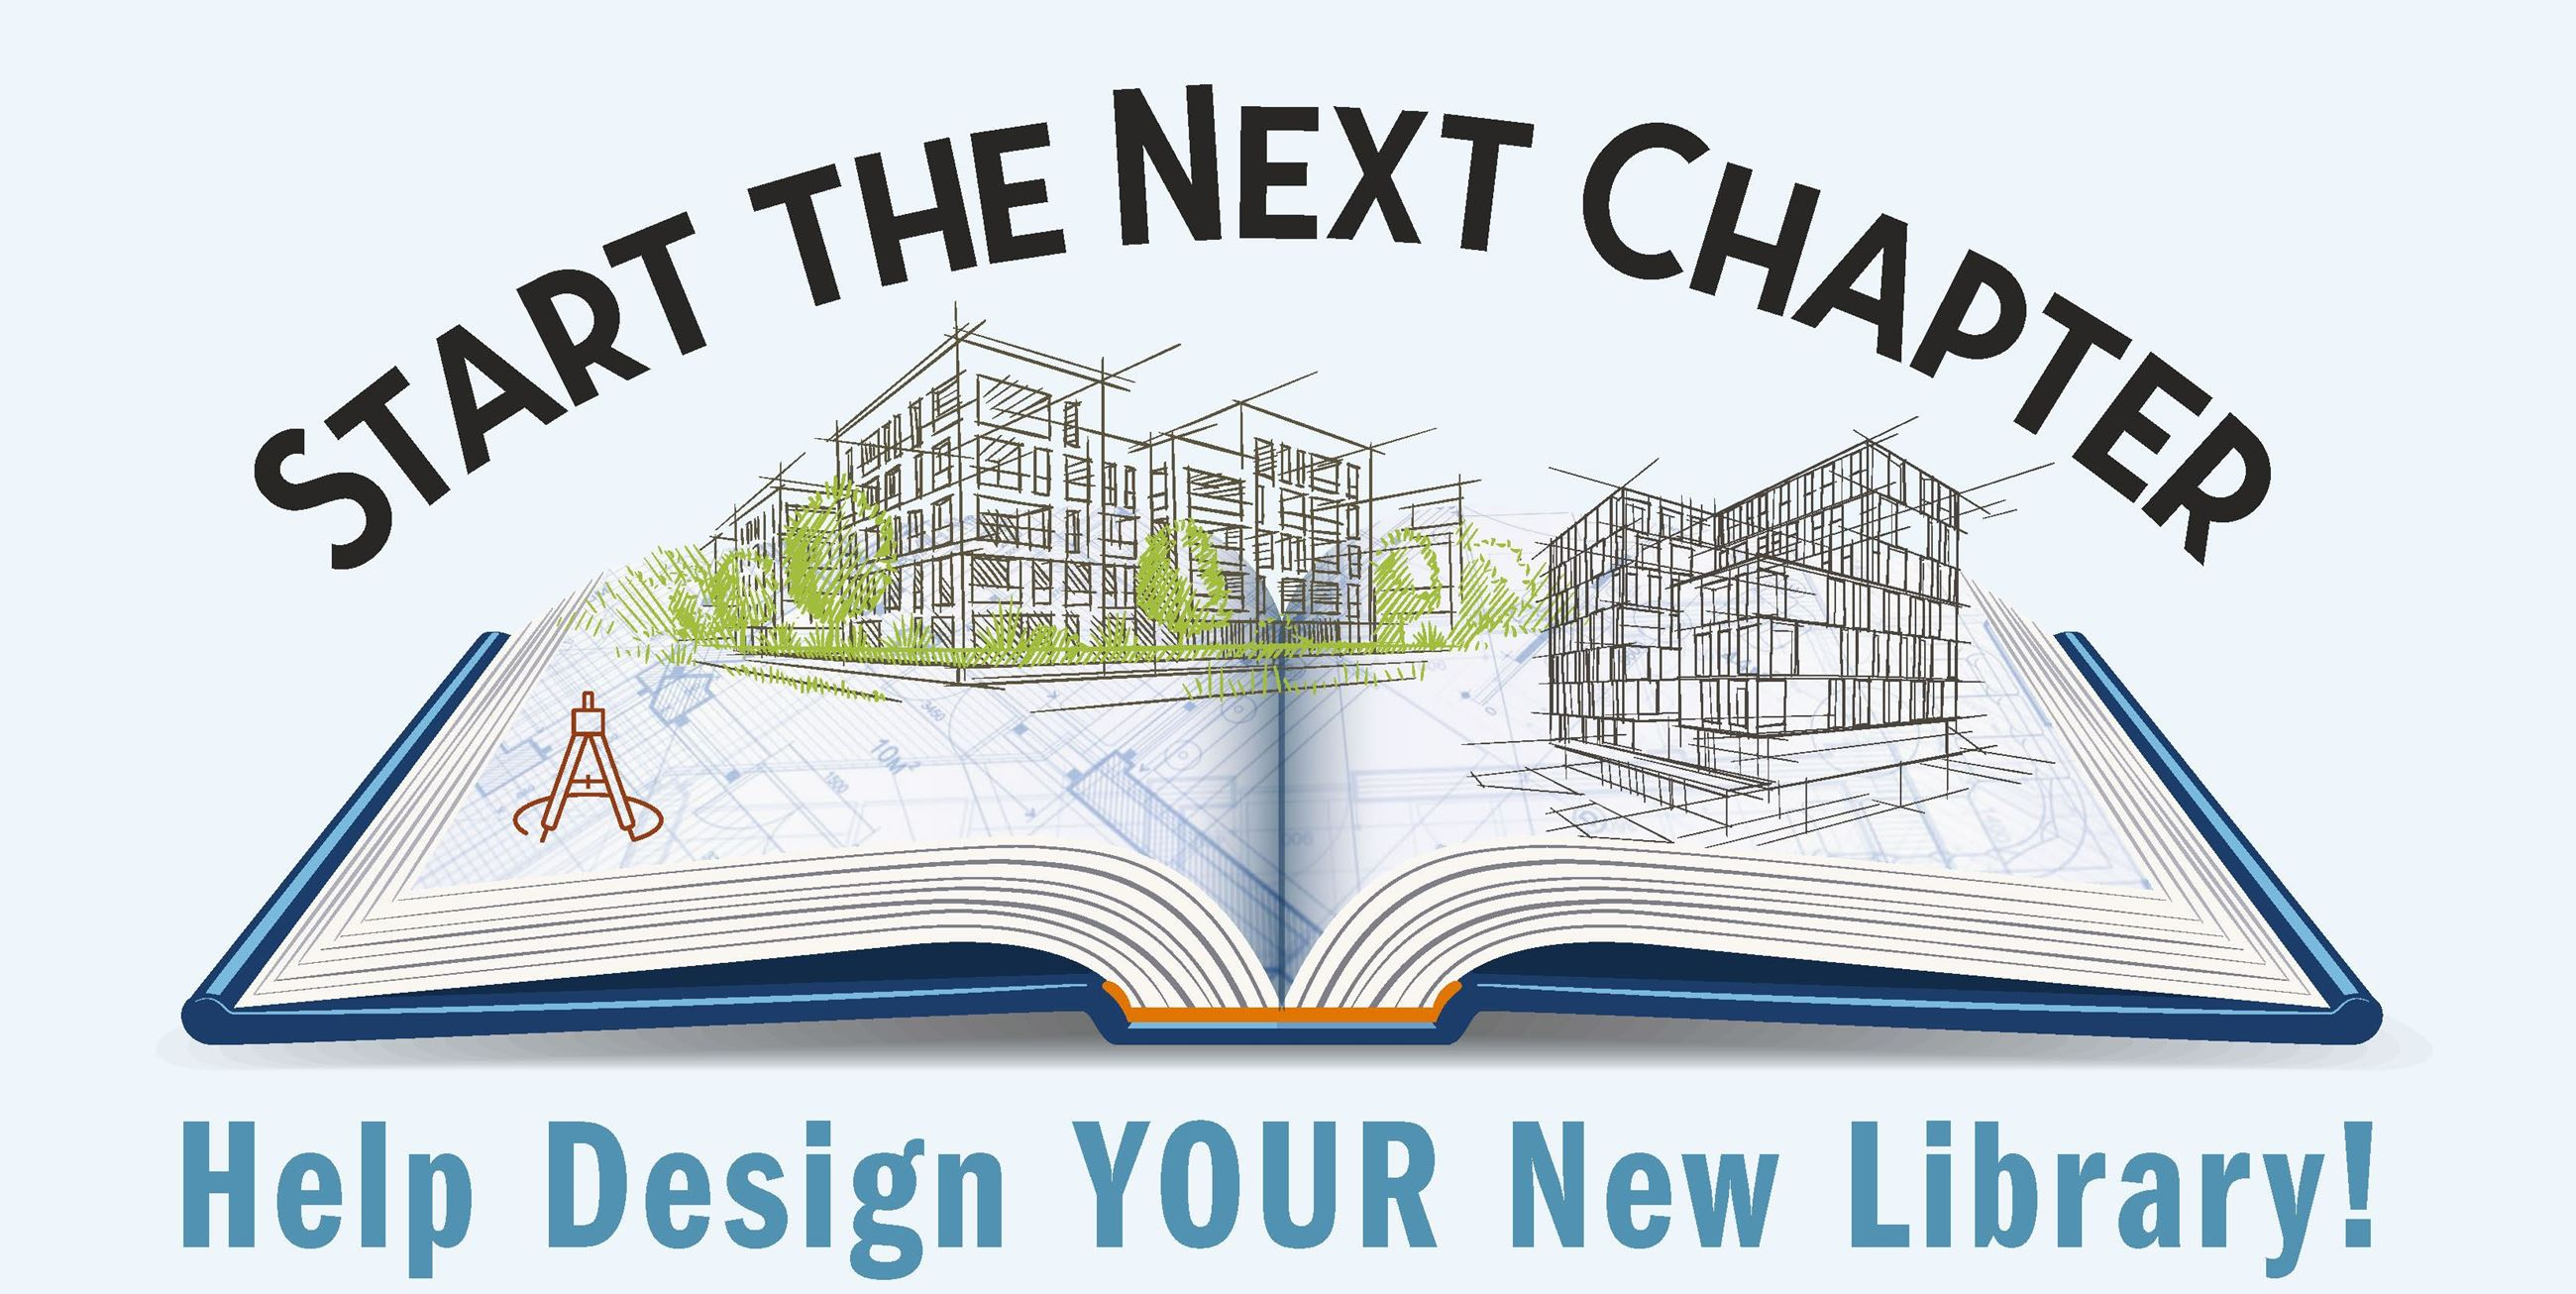 New City Library - Start The Next Chapter Opens in new window